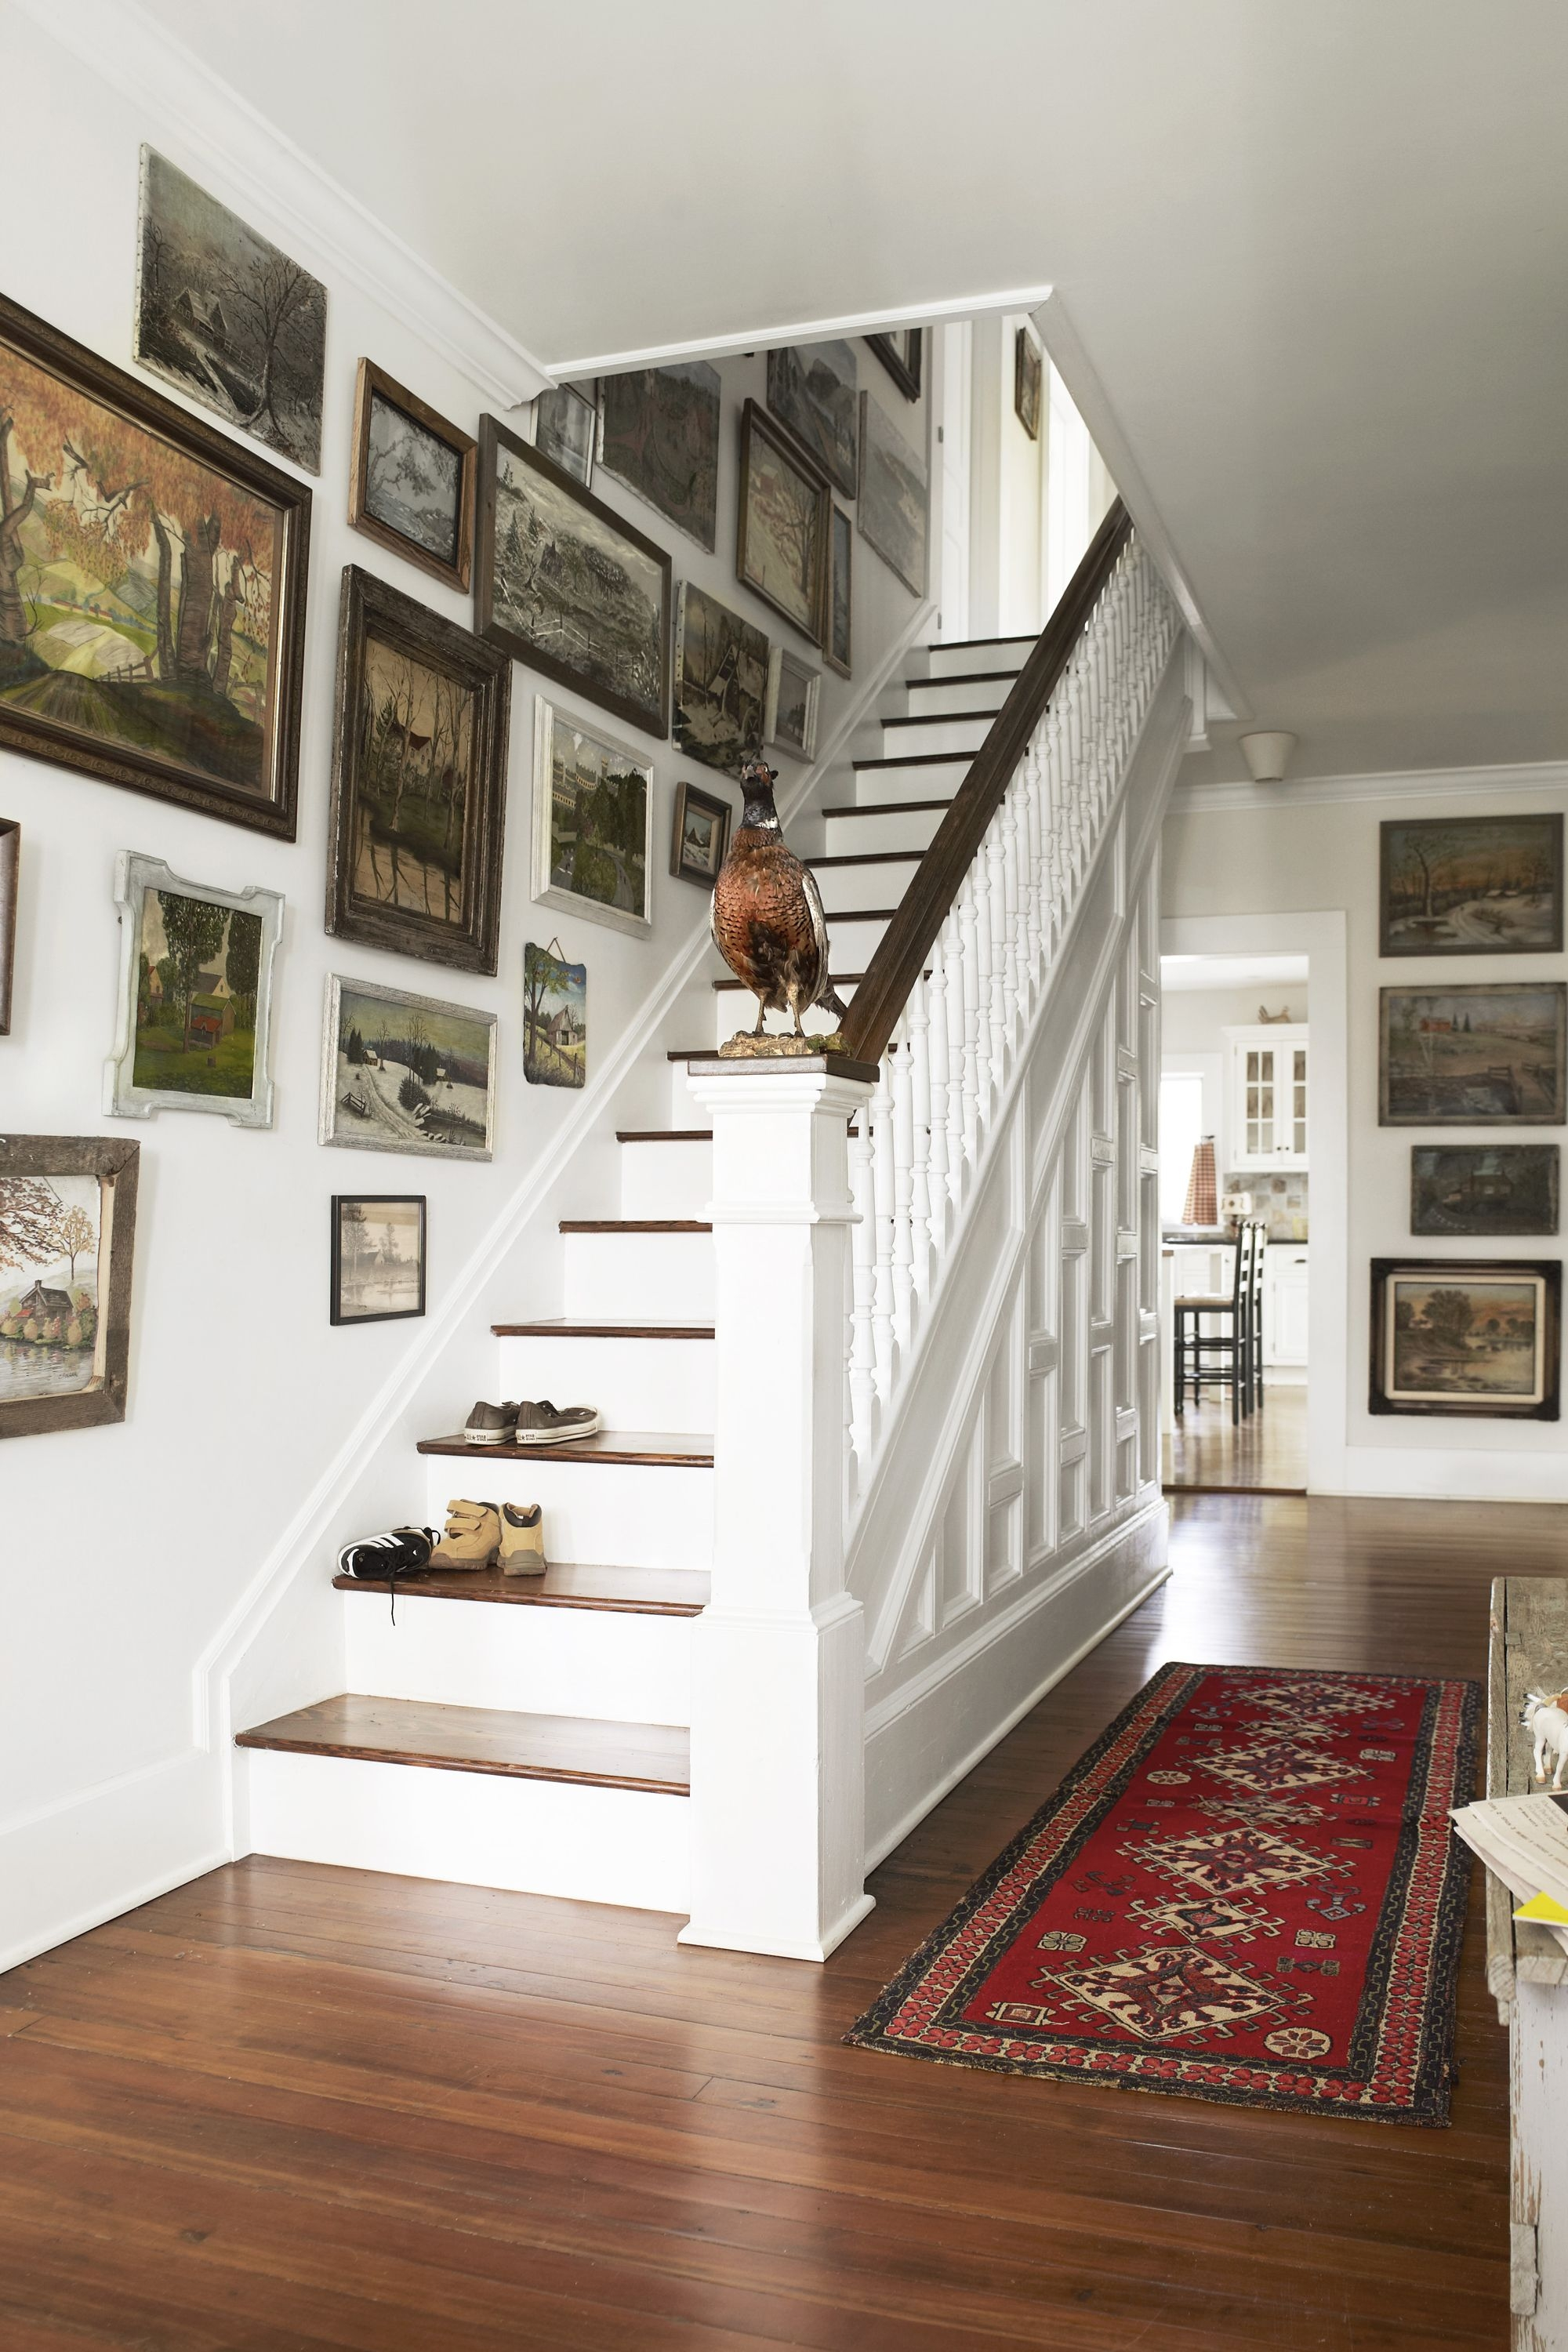 55 Best Staircase Ideas Top Ways To Decorate A Stairway | Steps Design In Hall | Duplex House | Style Indian | Concept | Beautiful | Front Main Entrance